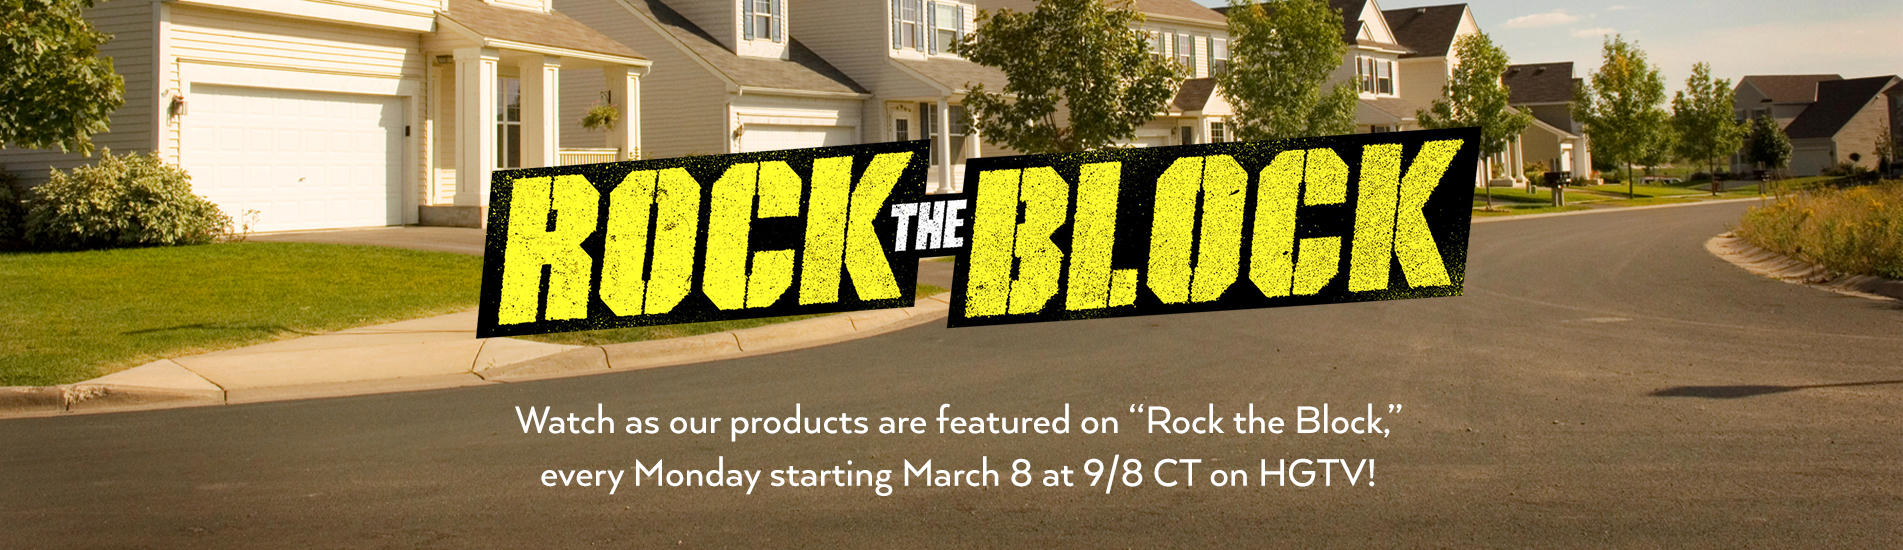 Rock the Block